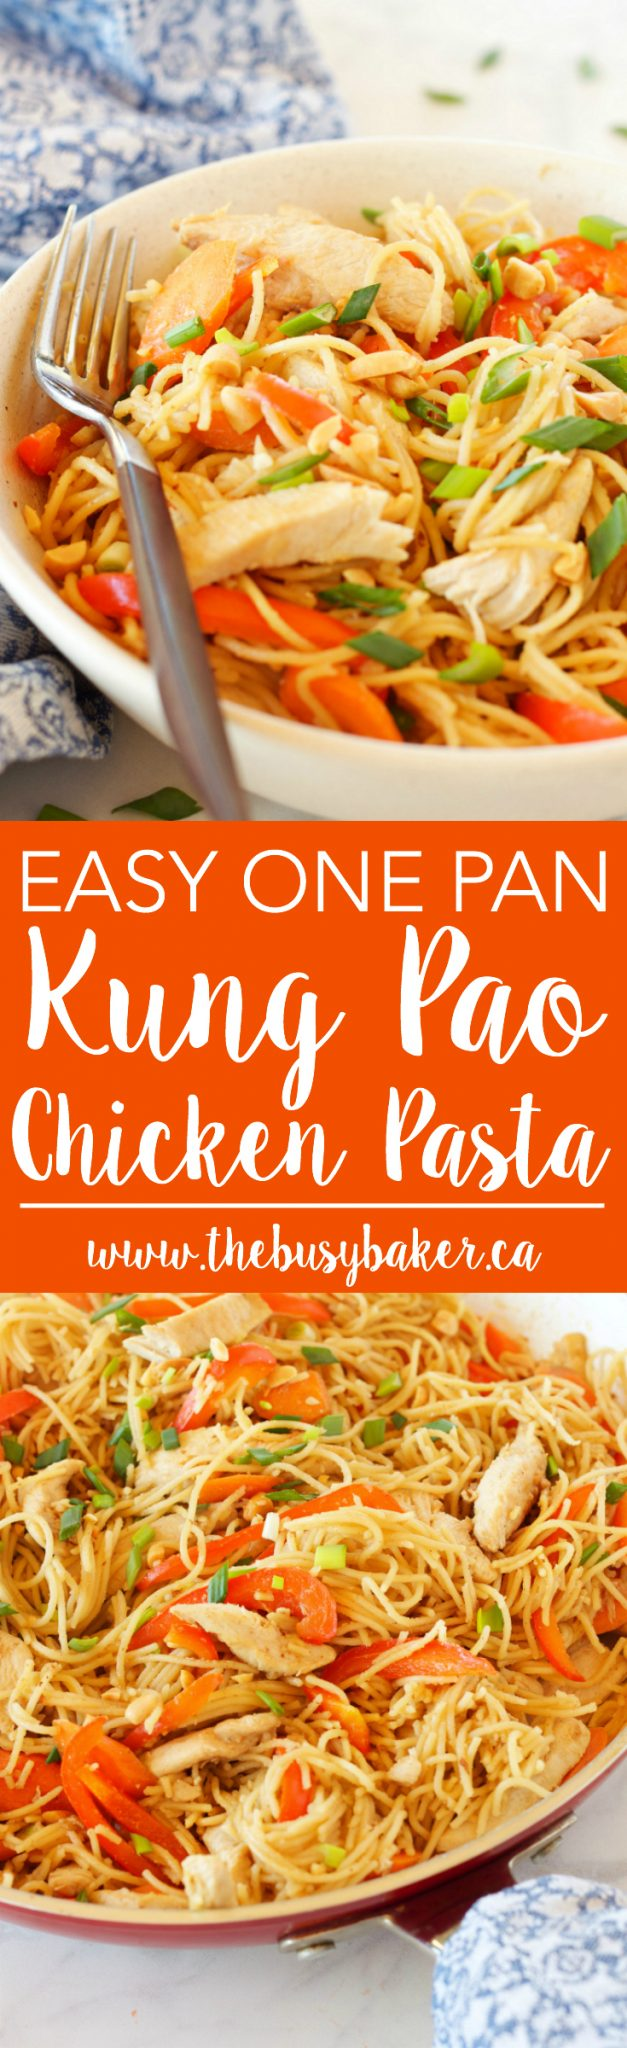 This Easy One Pan Kung Pao Chicken Pasta is a super easy Asian-inspired weeknight meal recipe that the whole family will love! And it's made with basic pantry staples and simple ingredients! thebusybaker.ca via @busybakerblog